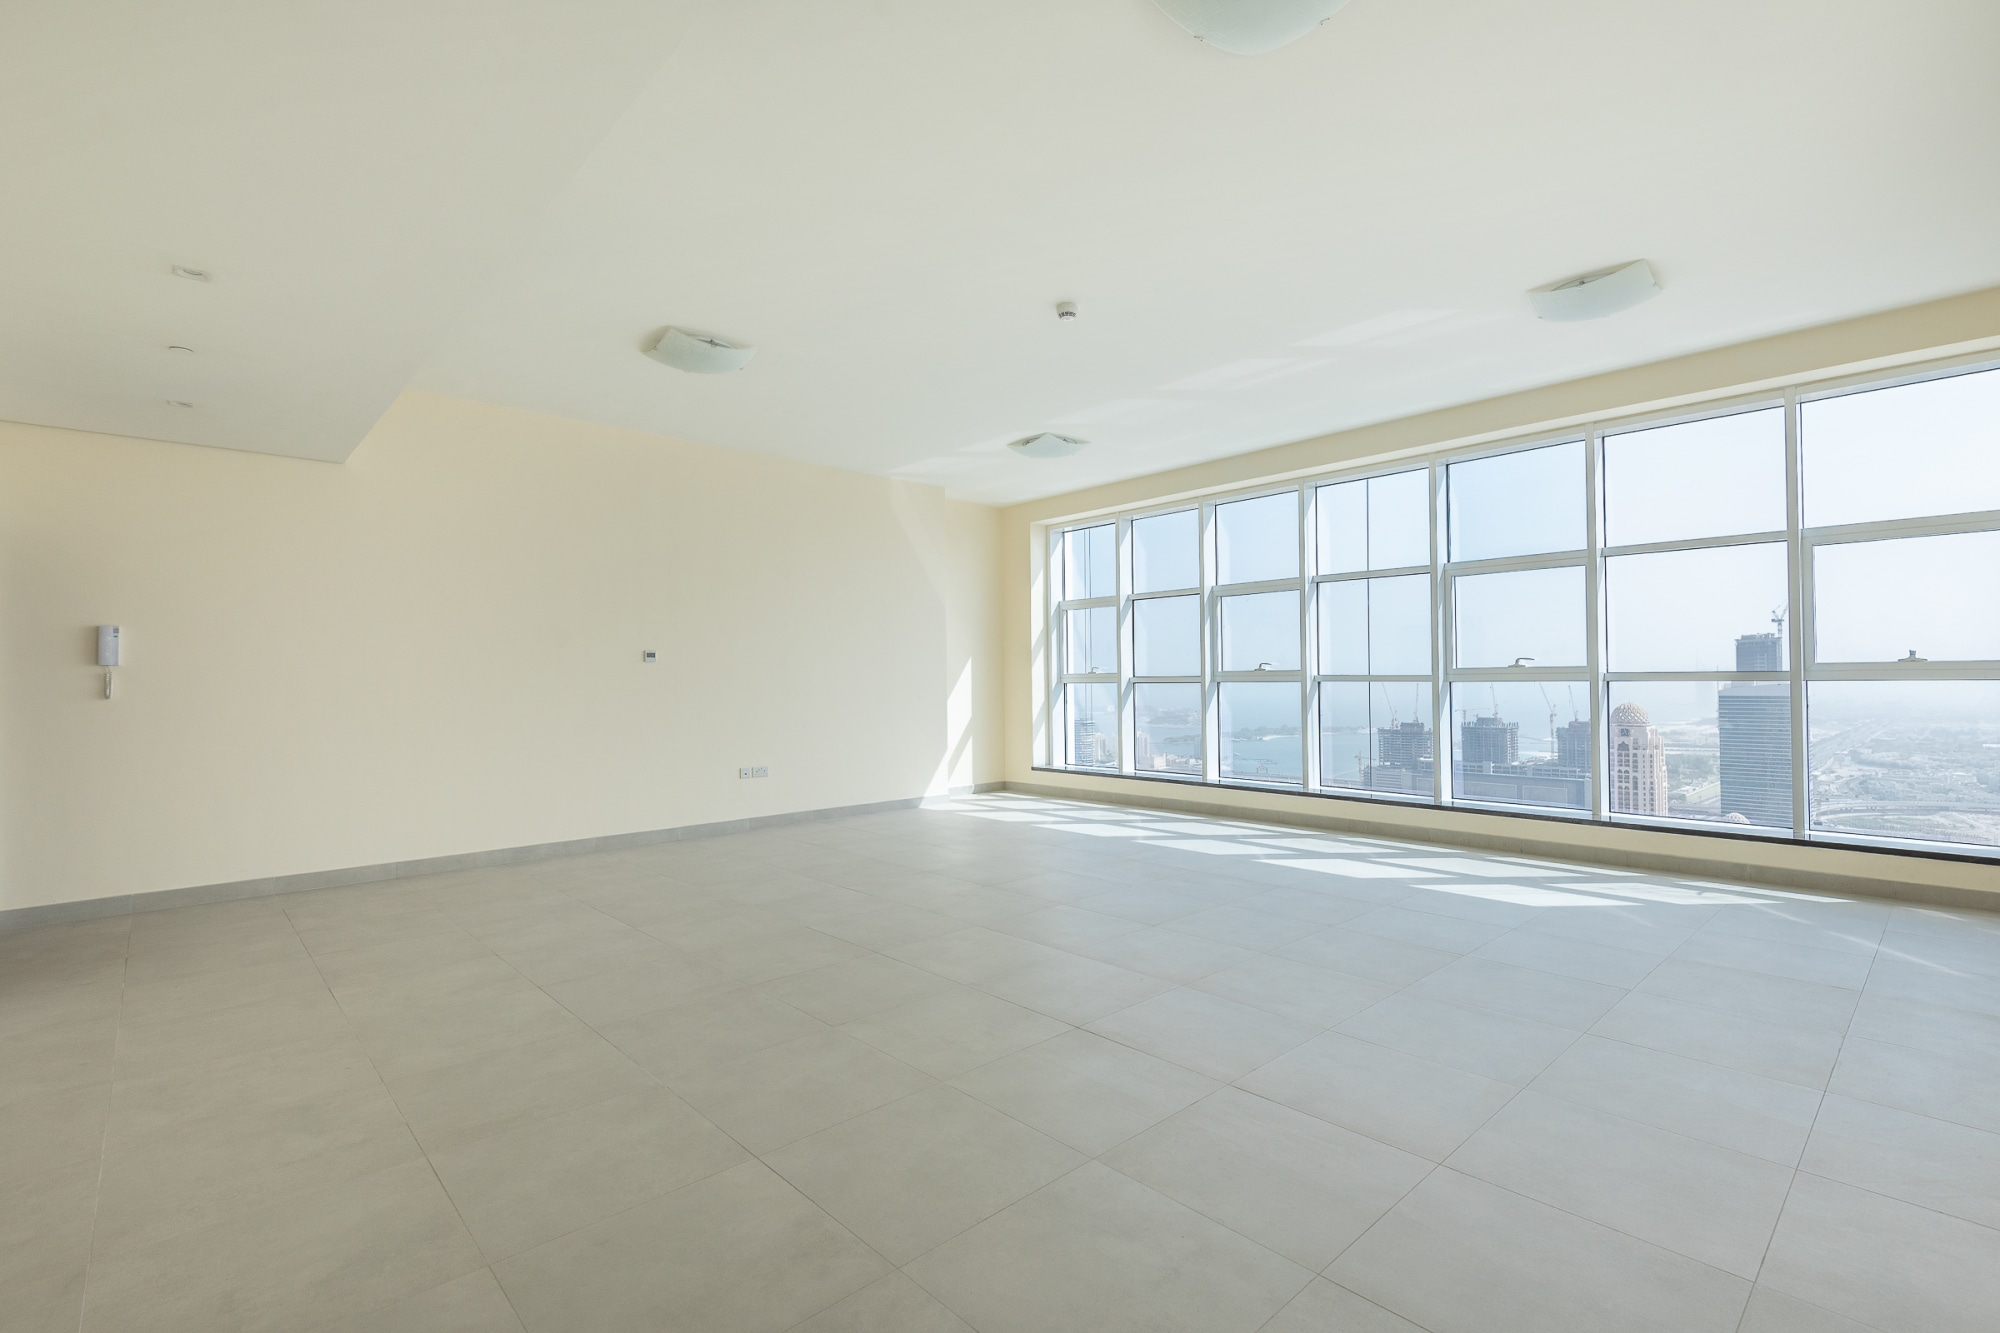 Penthouse Living|4 Bed plus Maid|Panoramic Views